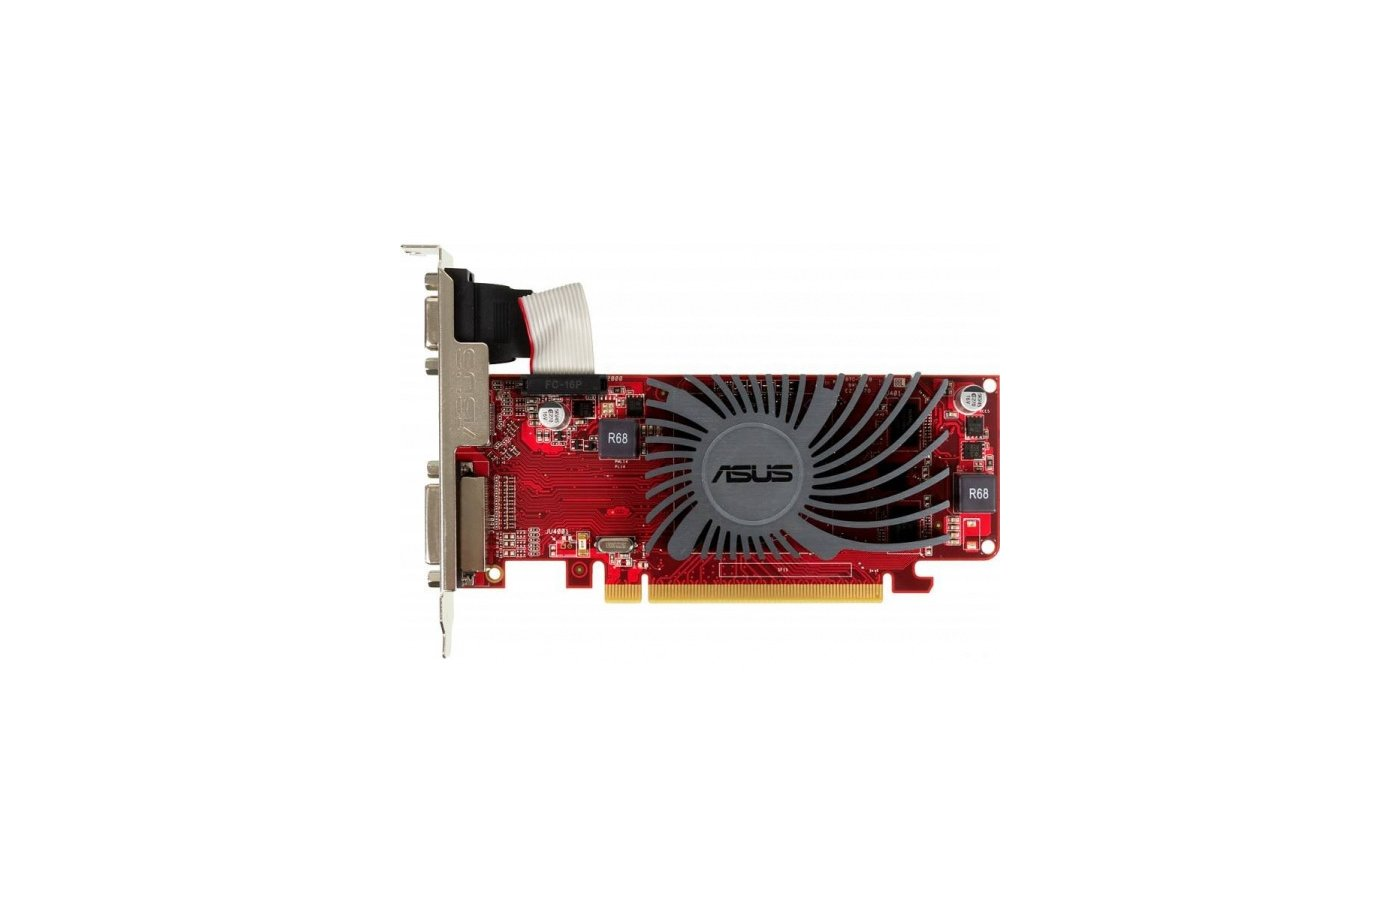 Видеокарта Asus PCI-E HD5450-SL-1GD3-L-V2 AMD Radeon HD 5450 1024Mb 64bit Ret low profile